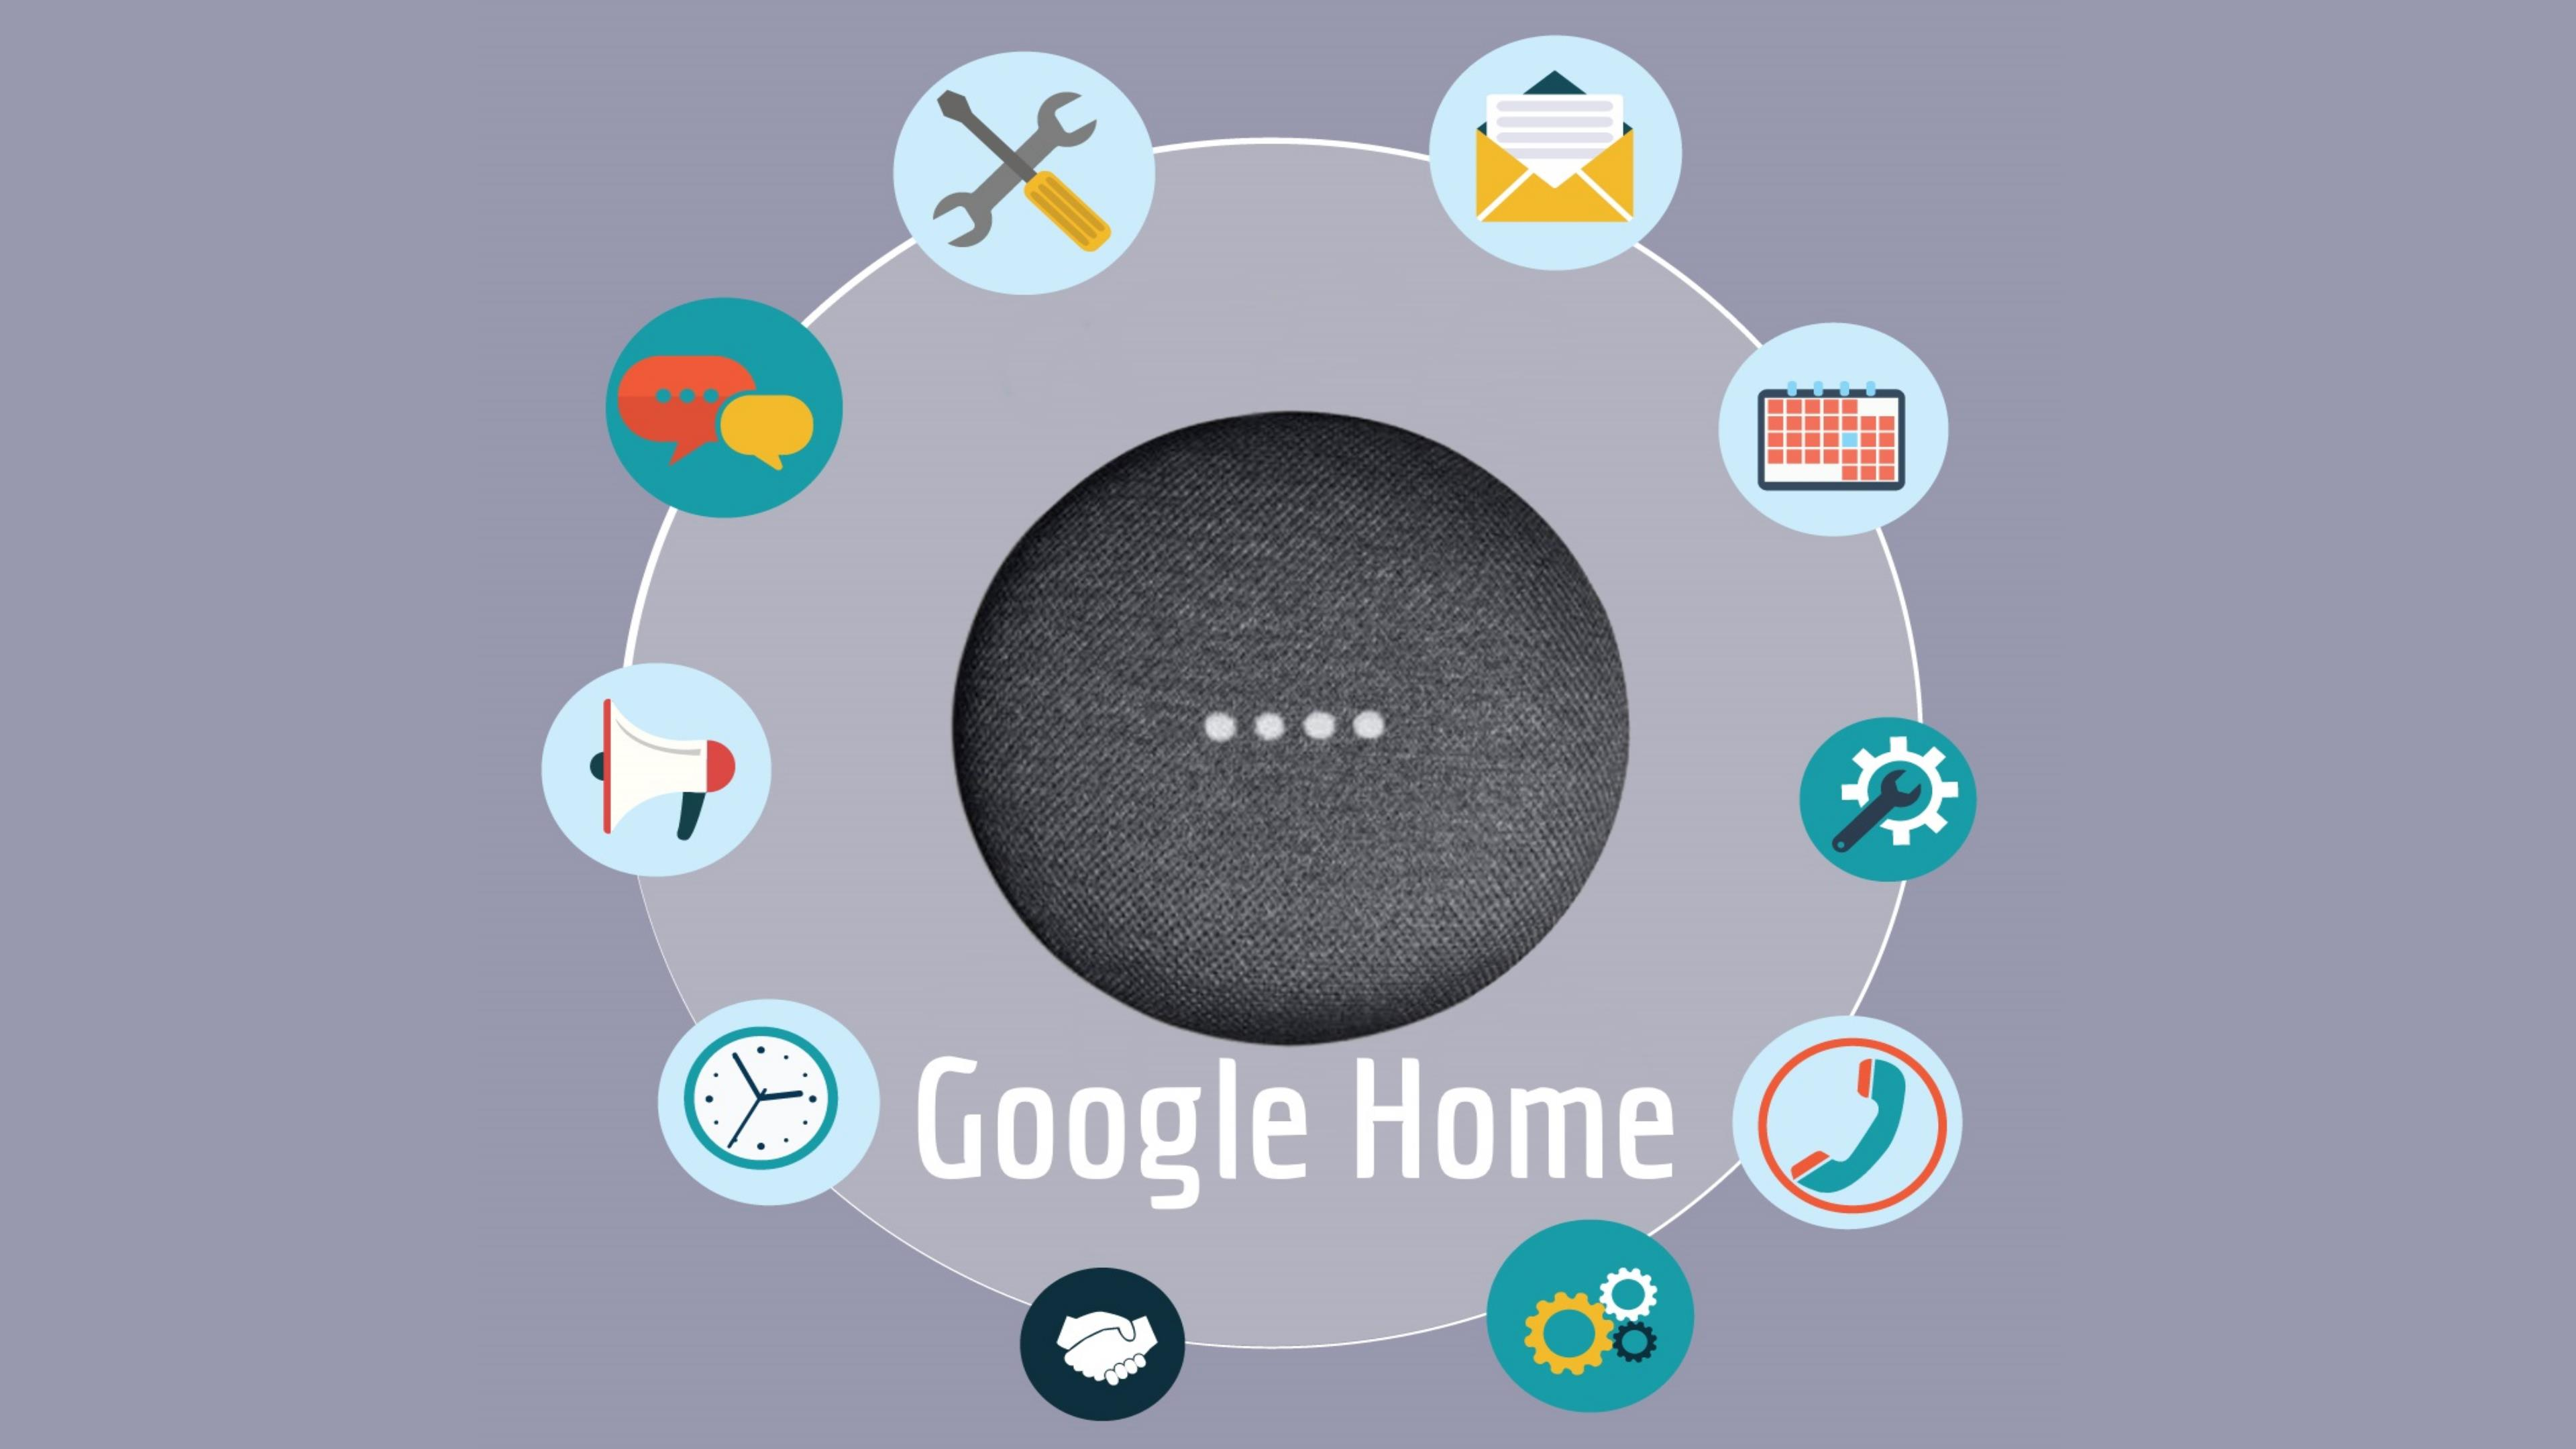 Google Home als Smart Home aansturing